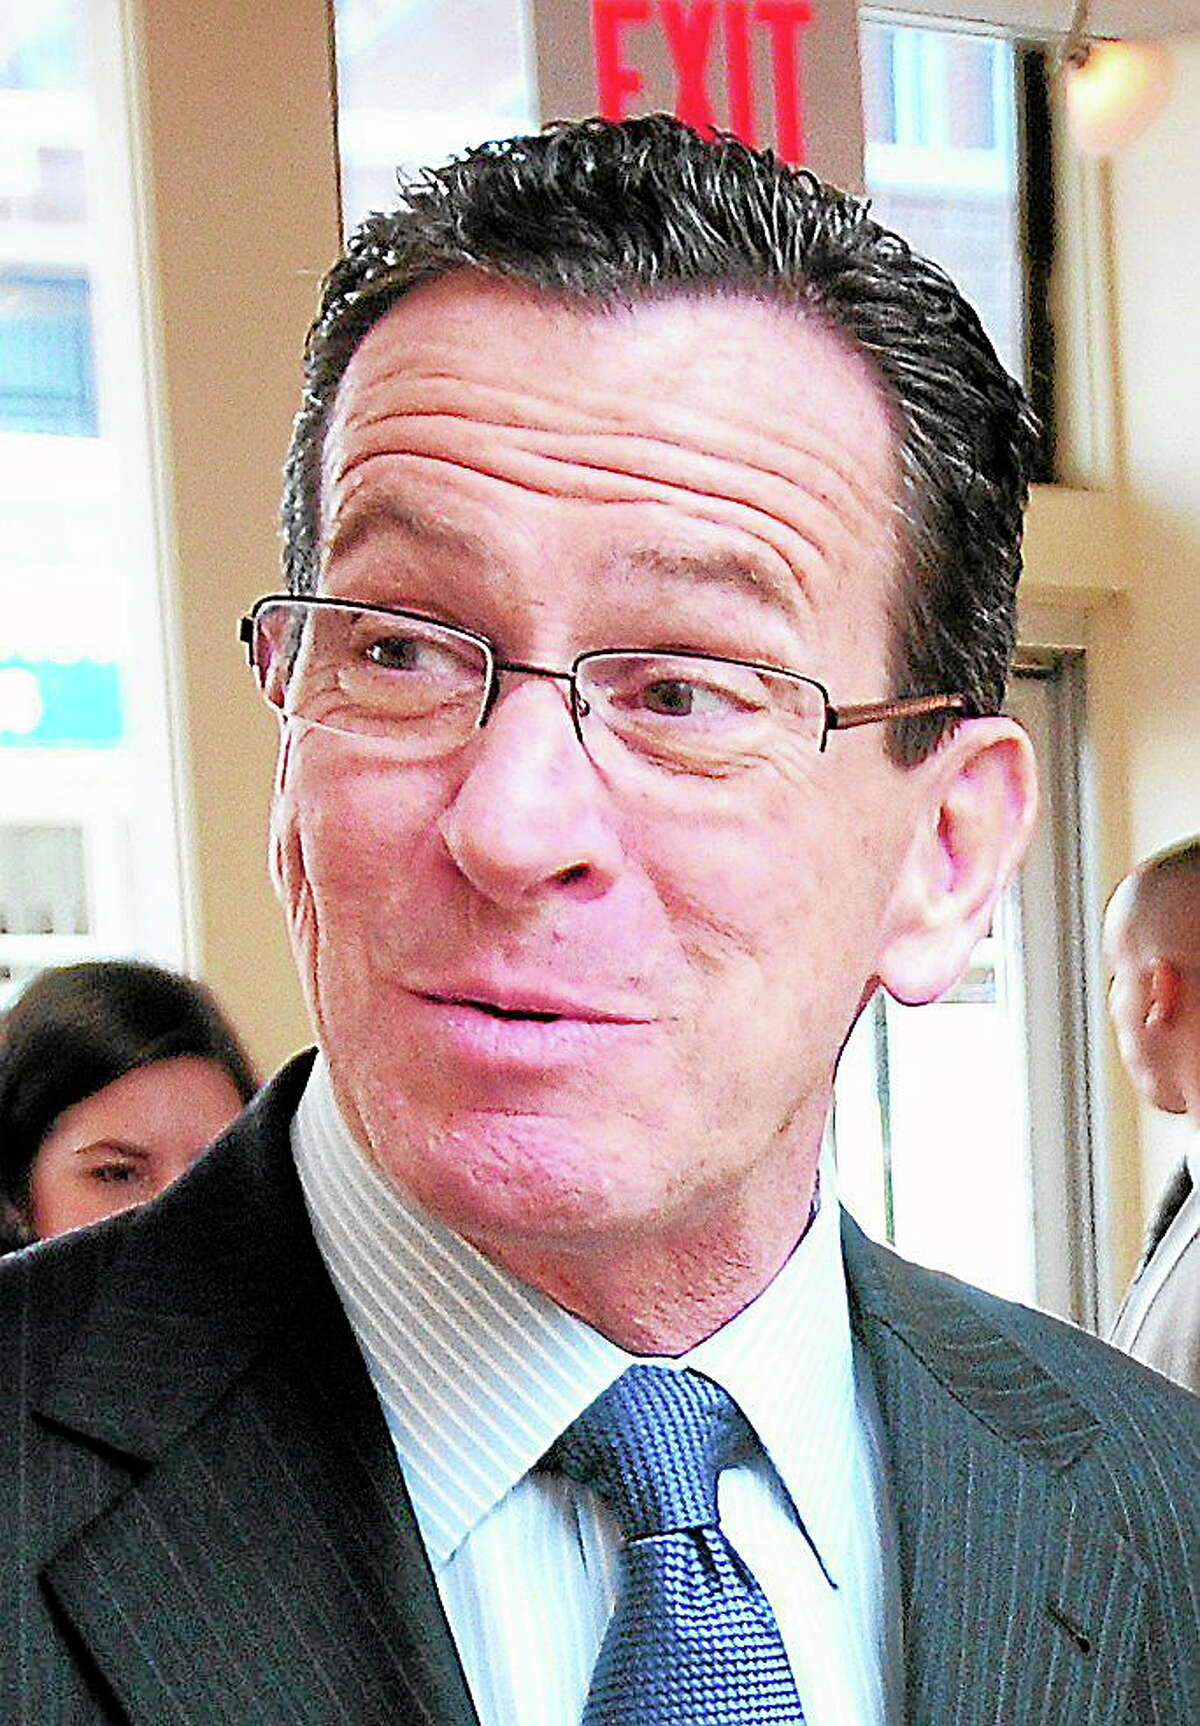 Gov. Dannel P. Malloy. Register file photo